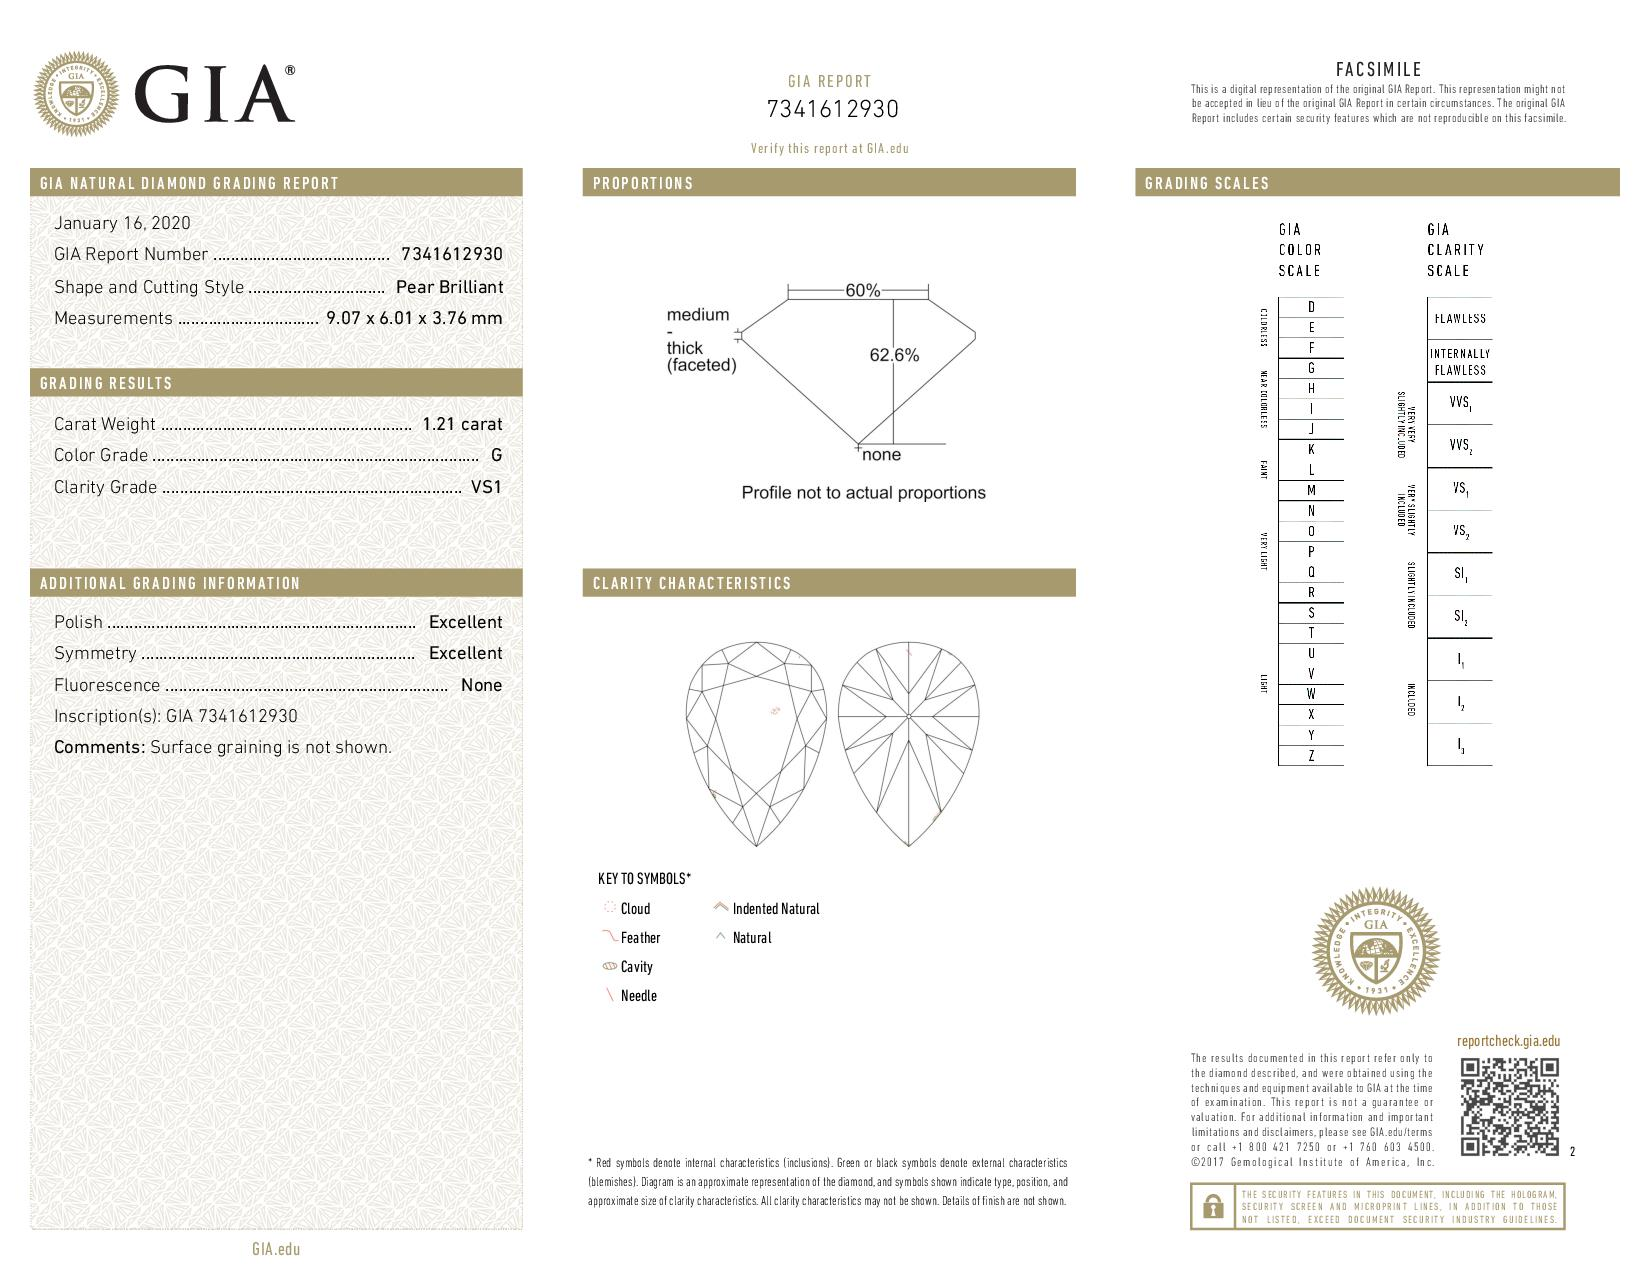 This is a 1.21 carat pear shape, G color, VS1 clarity natural diamond accompanied by a GIA grading report.